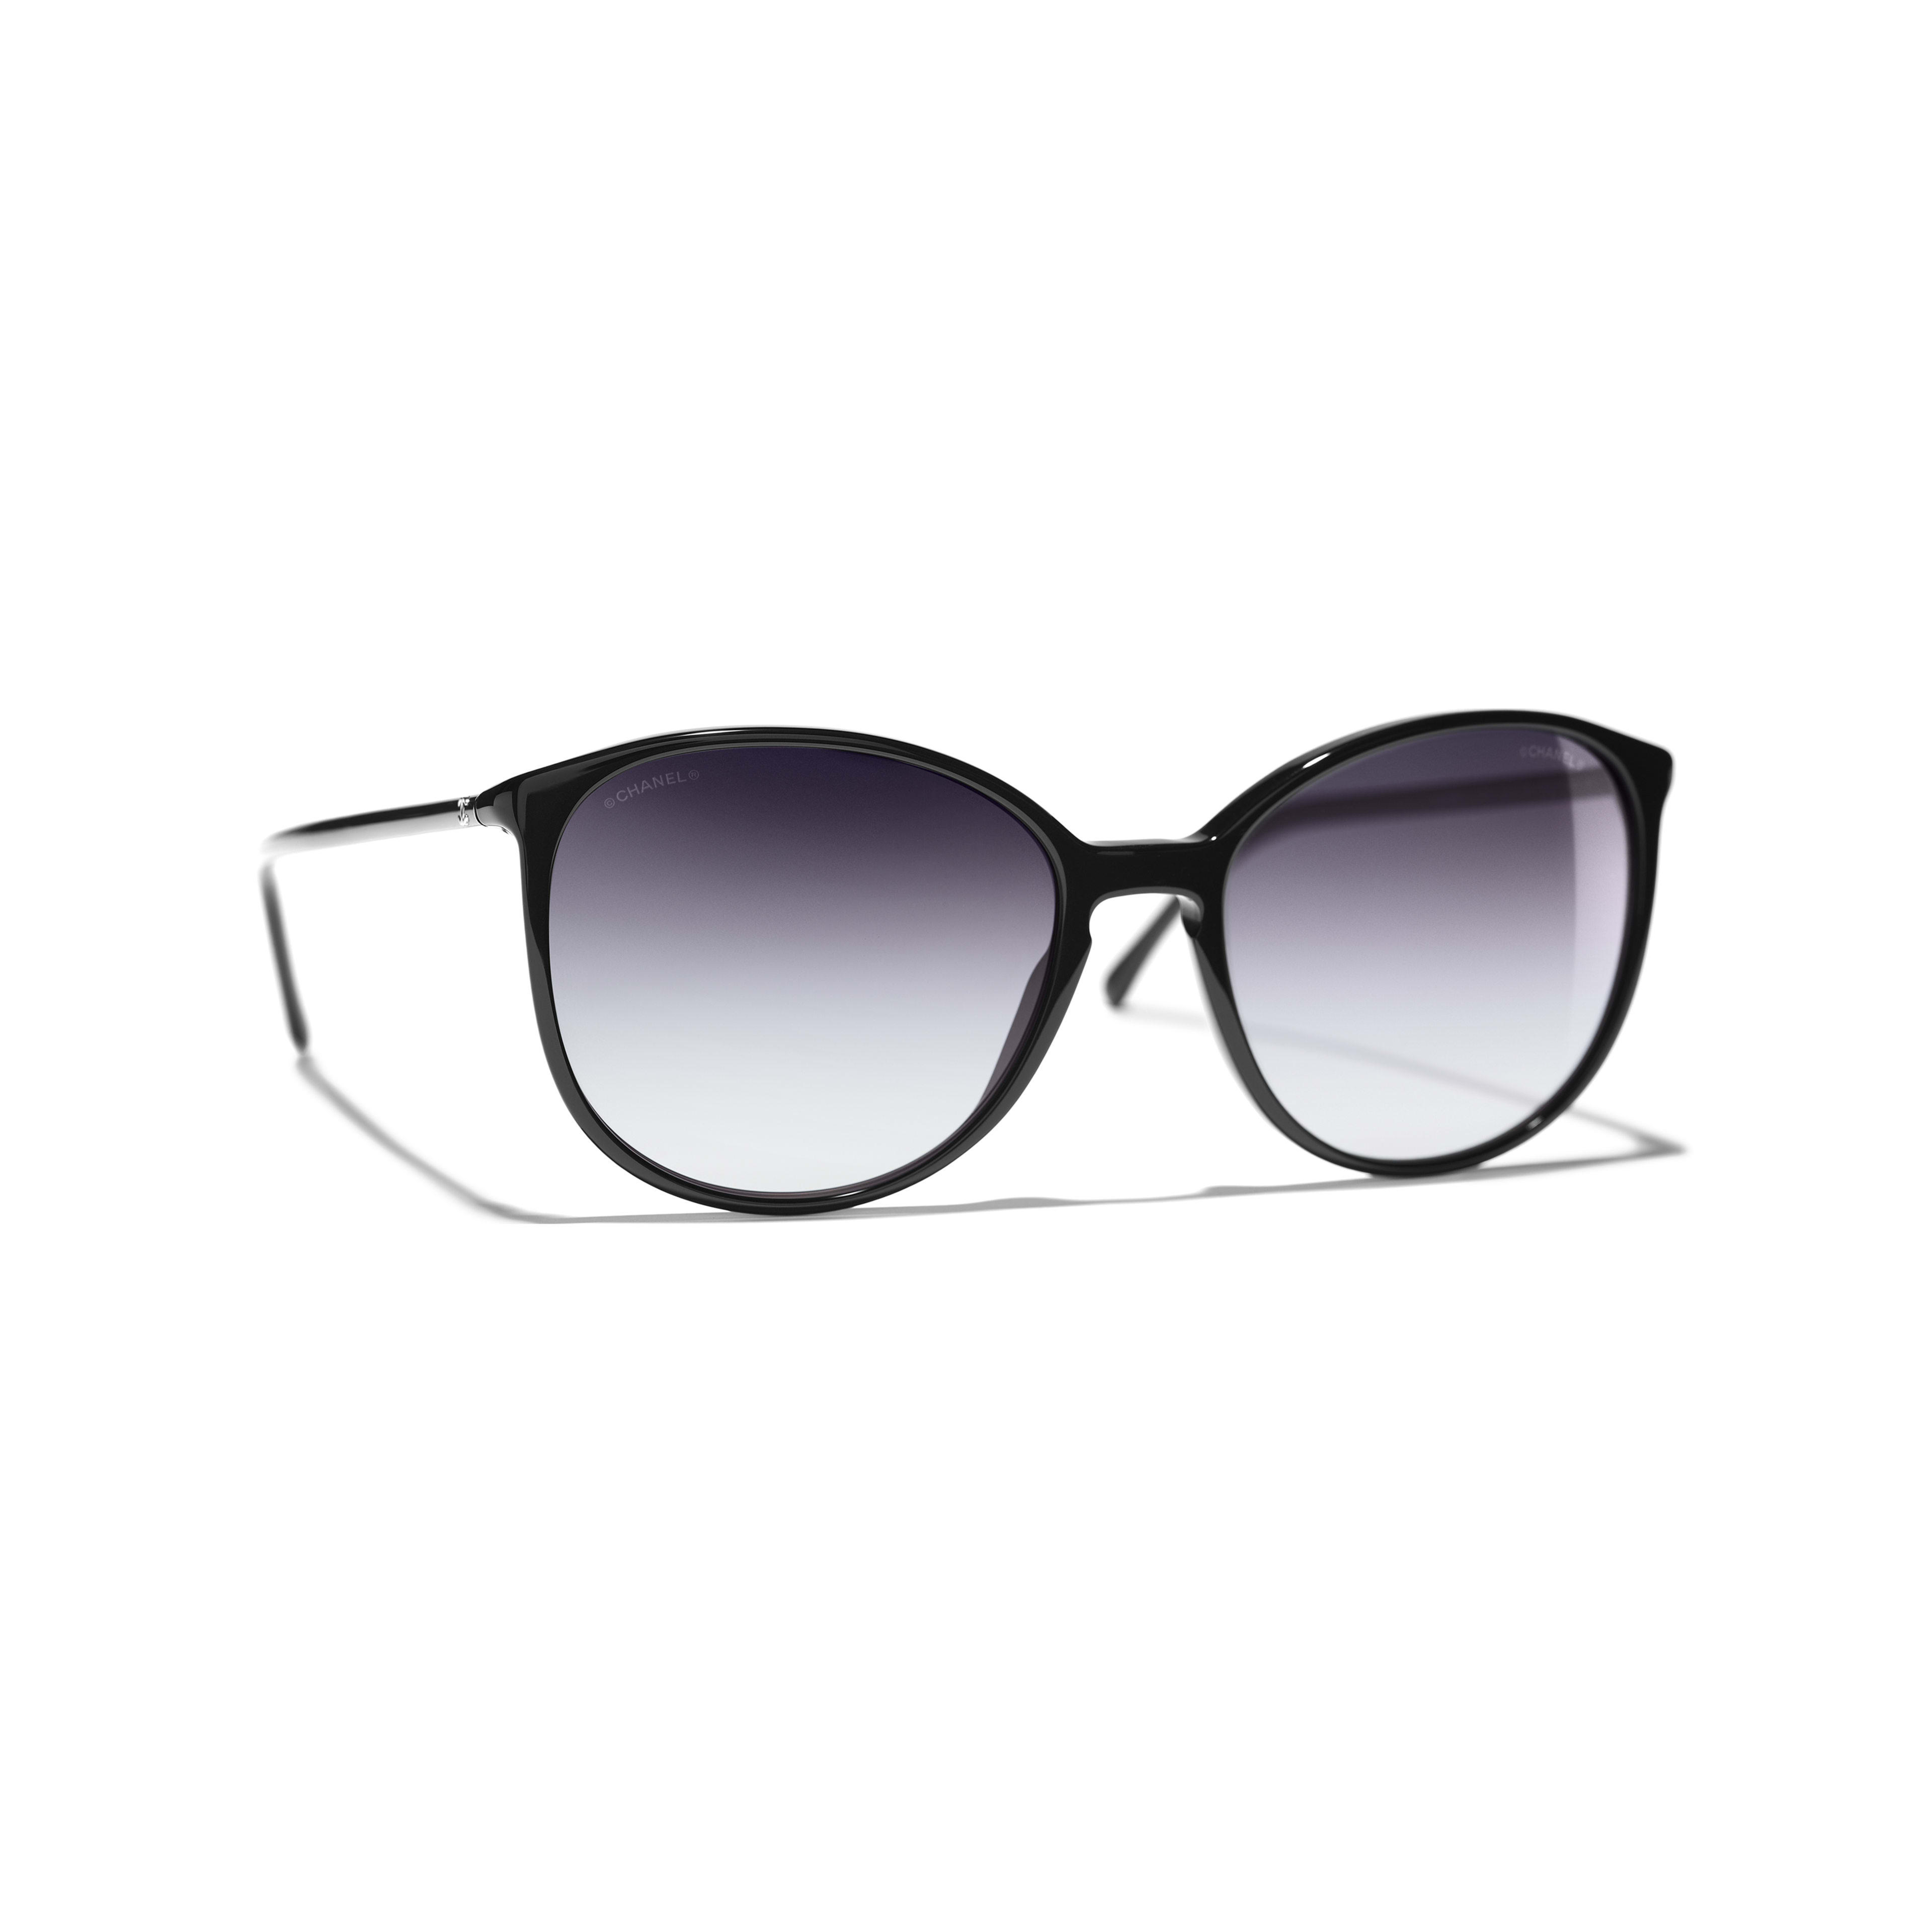 Butterfly Sunglasses - Black - Acetate - CHANEL - Default view - see standard sized version